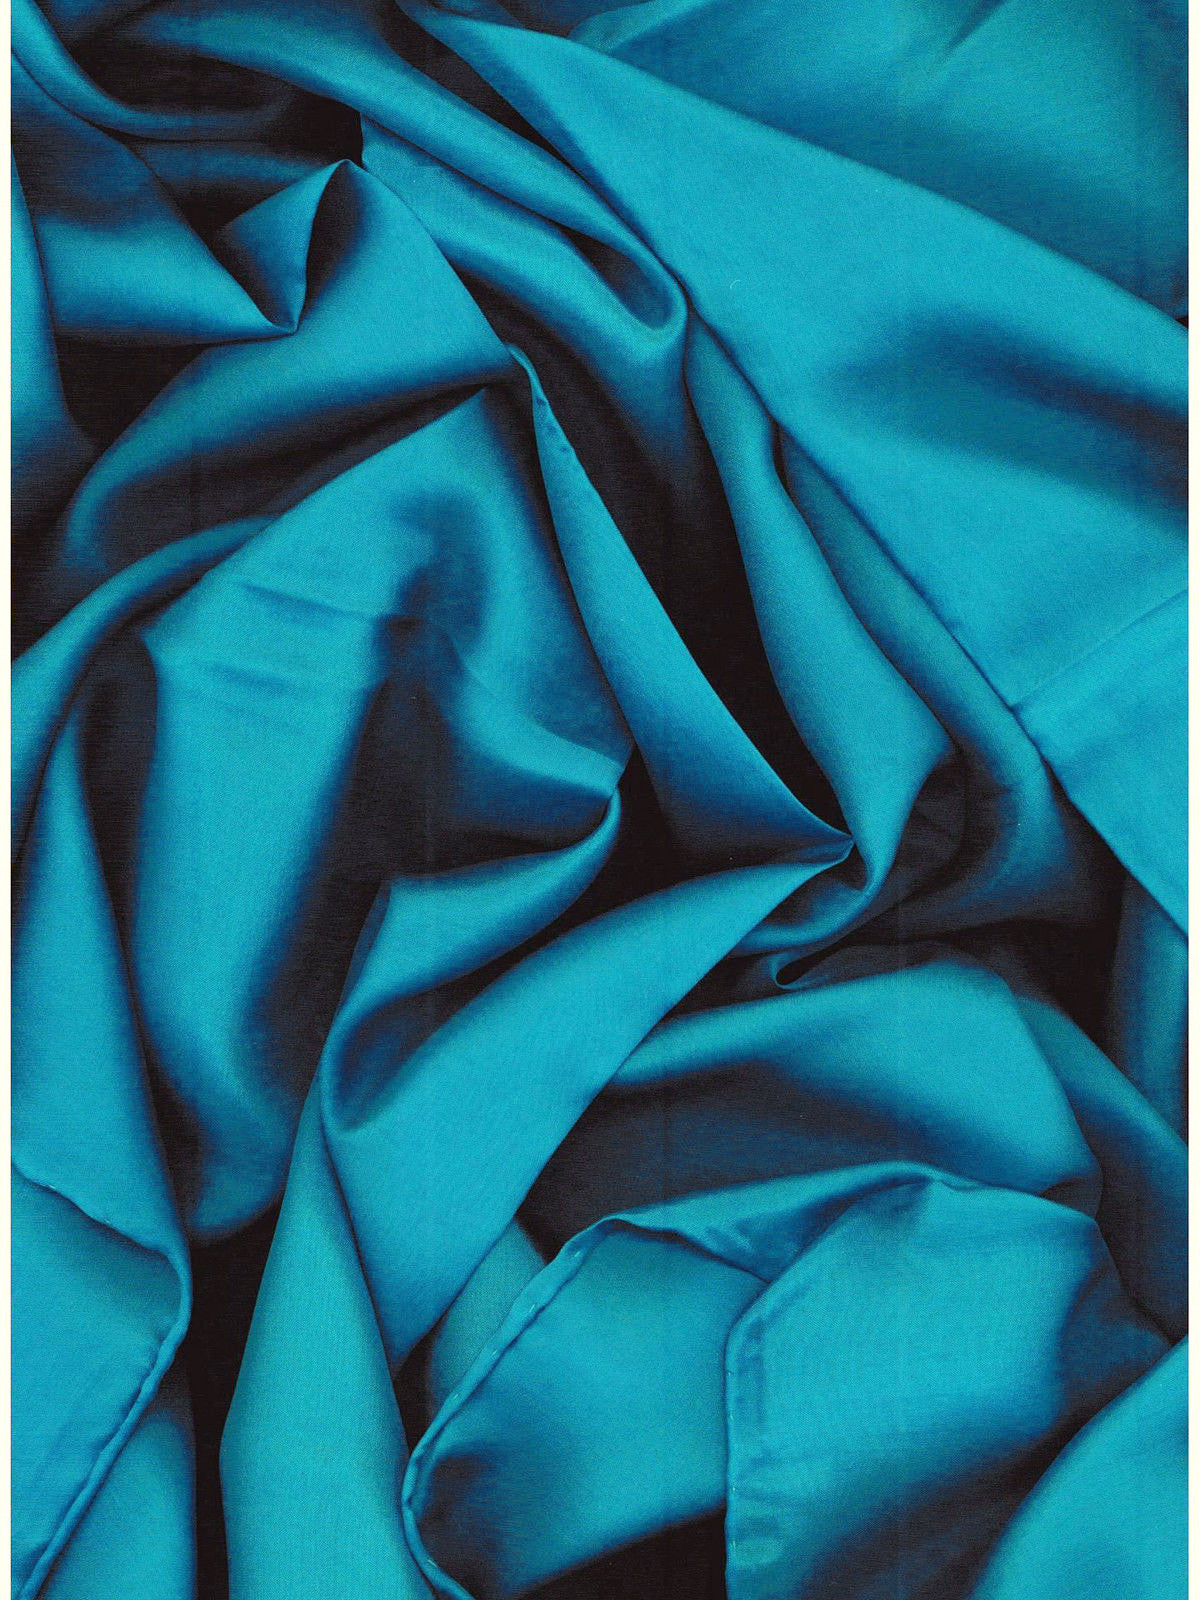 Wild Rags Solid Turquoise 100% Silk ruffled